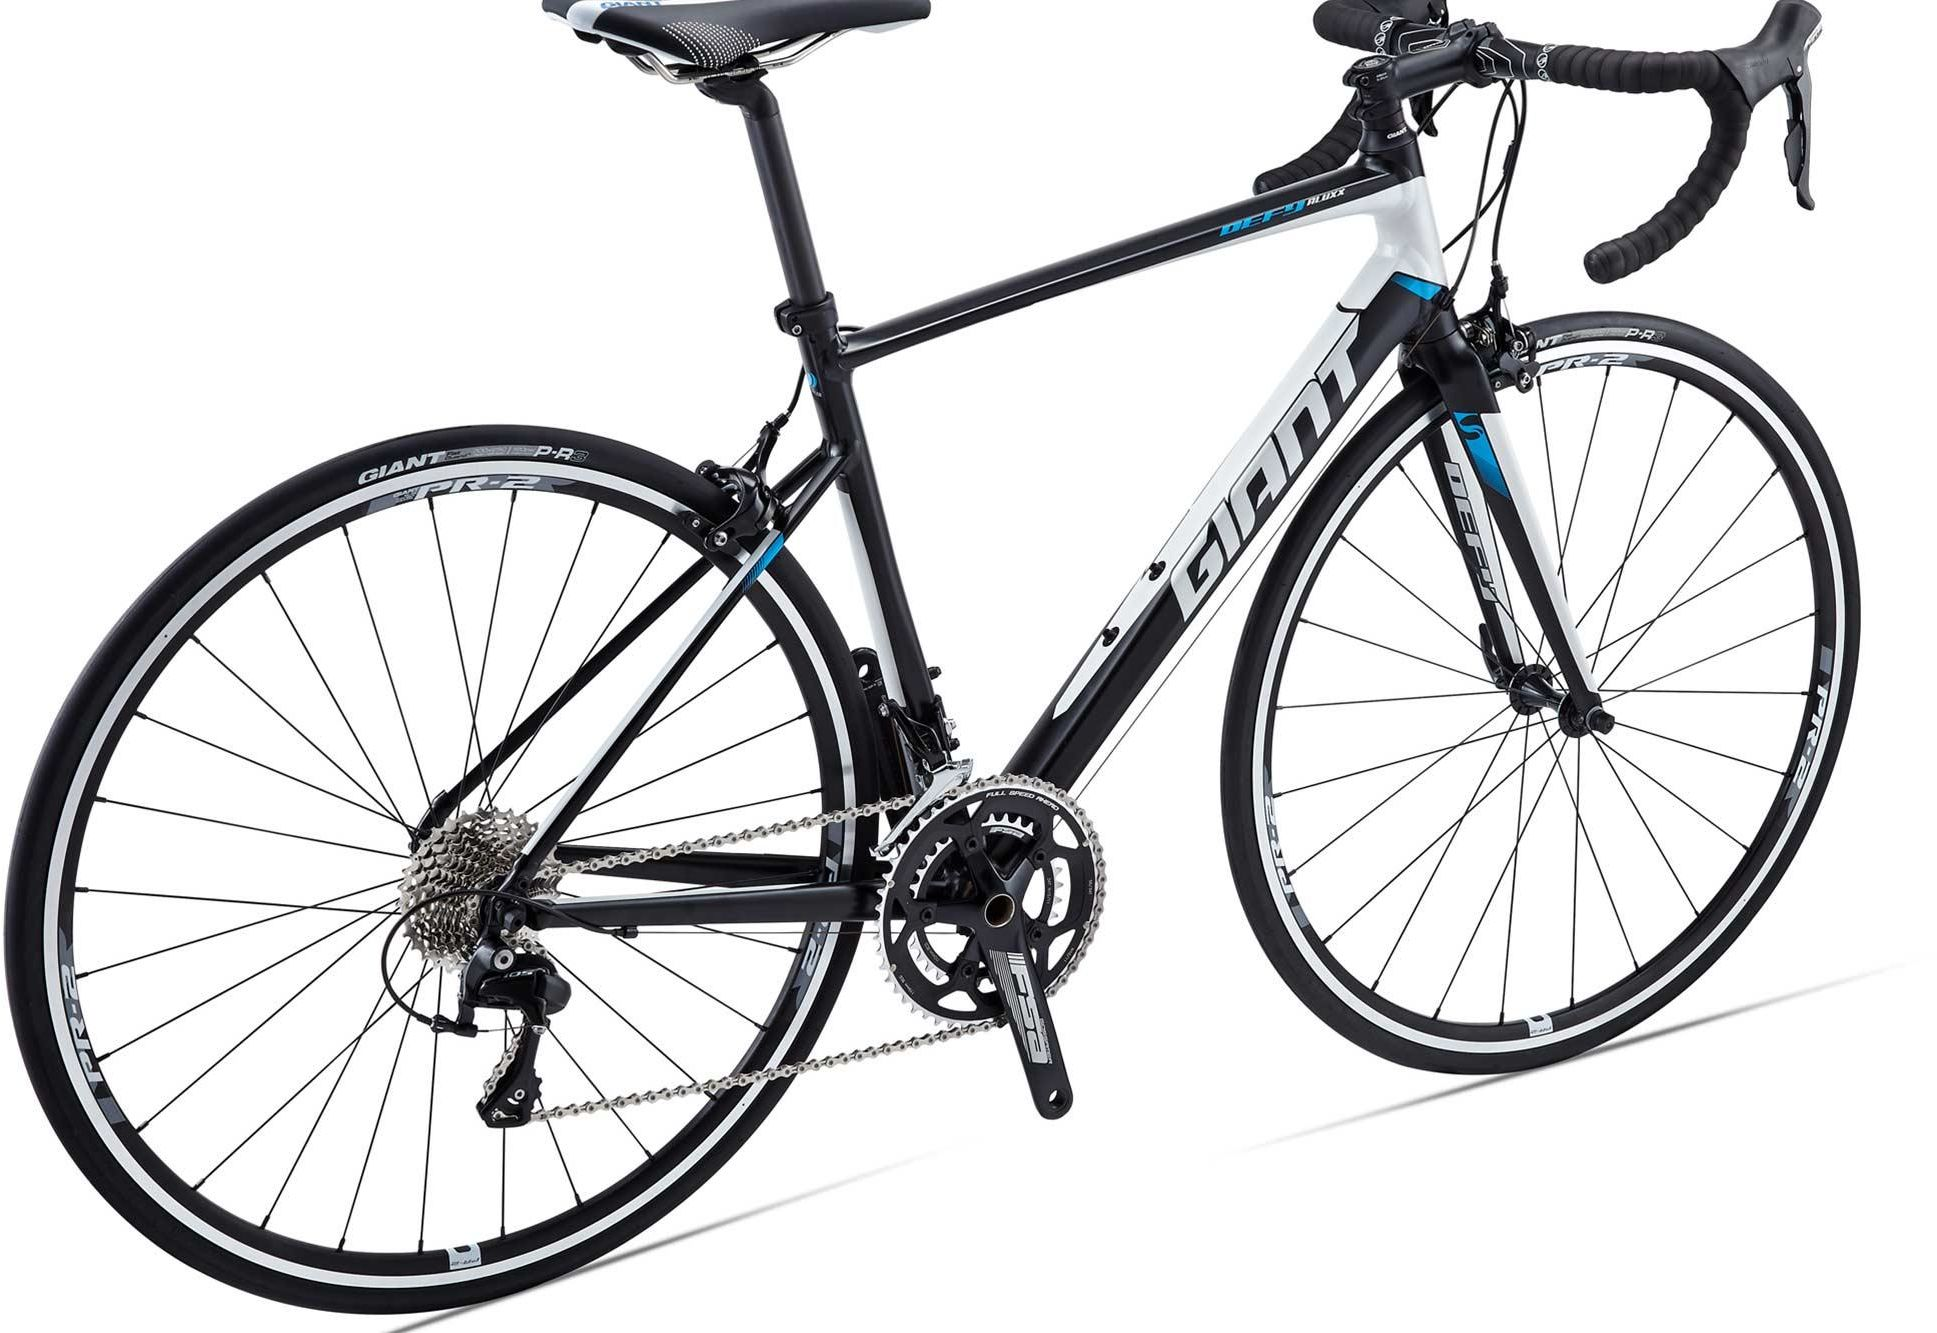 Giant Defy 1 2015 review - The Bike List